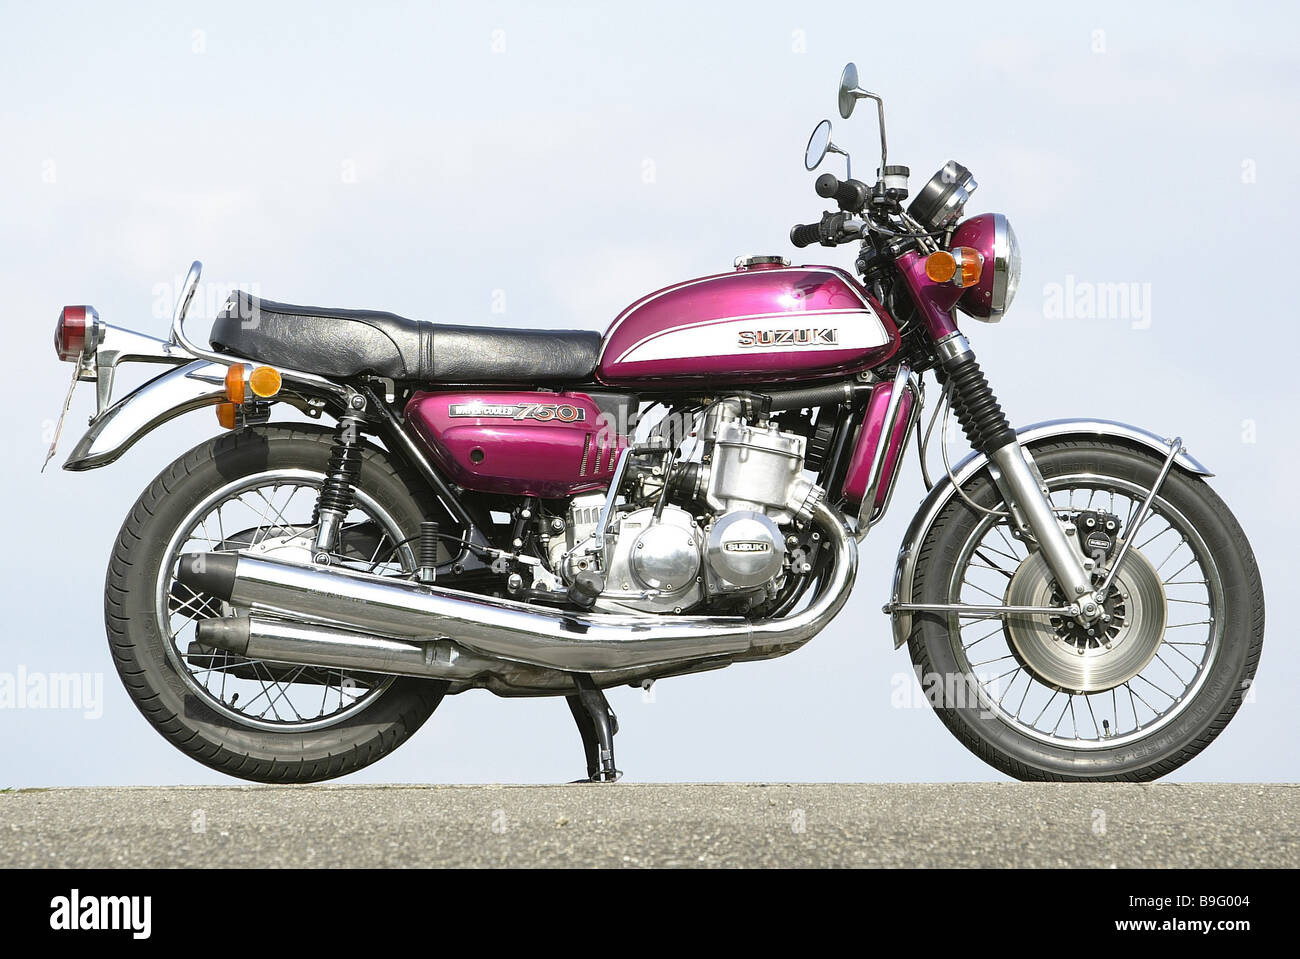 motorcycle suzuki gt 750 purple at the side bicycle means. Black Bedroom Furniture Sets. Home Design Ideas